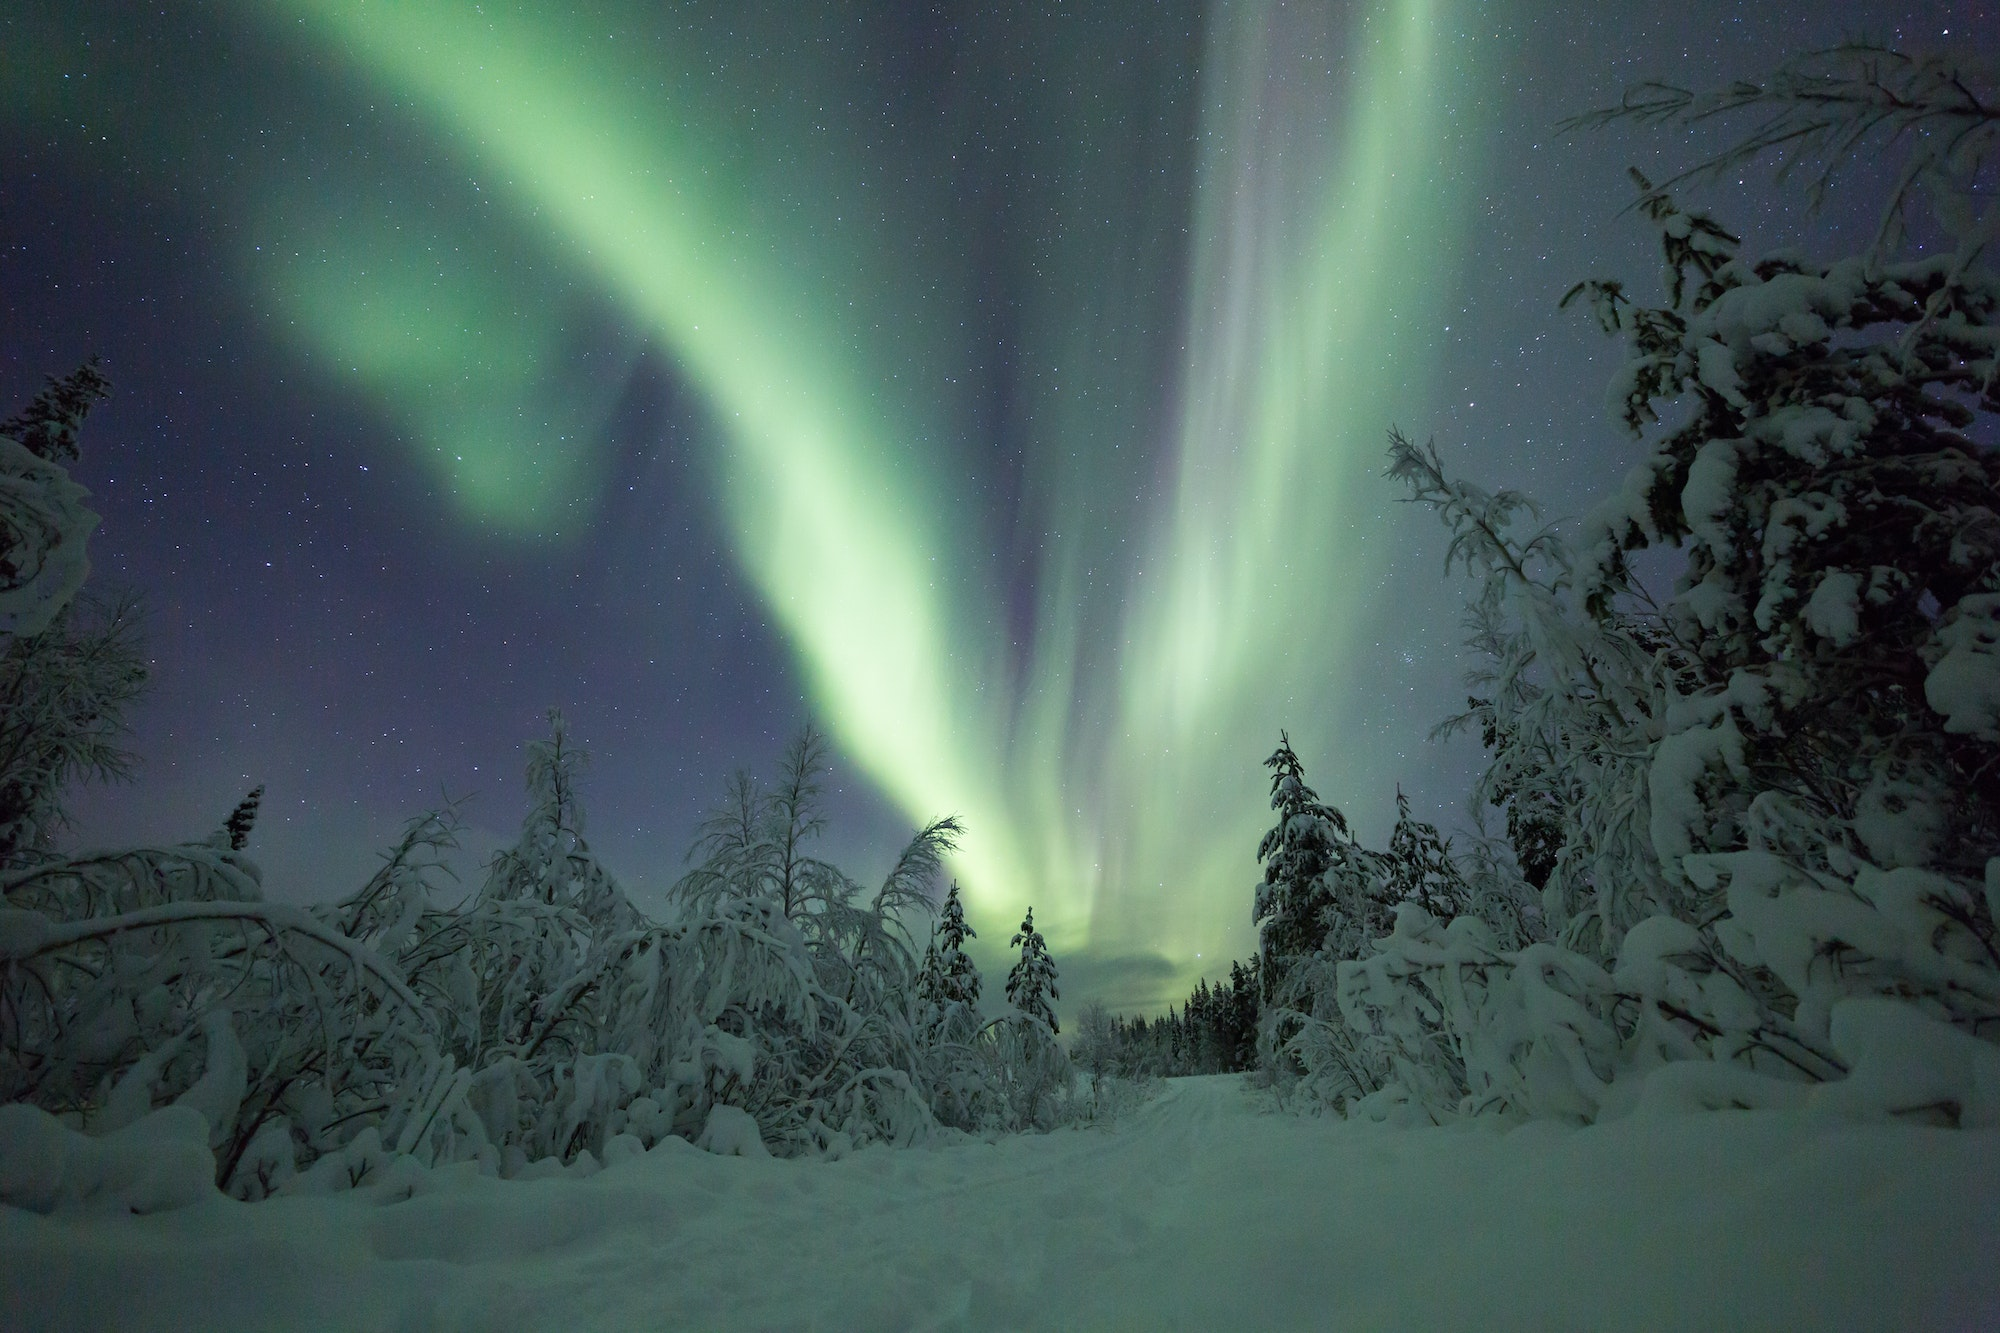 The northern lights are visible on about 200 nights a year in Finnish Lapland.